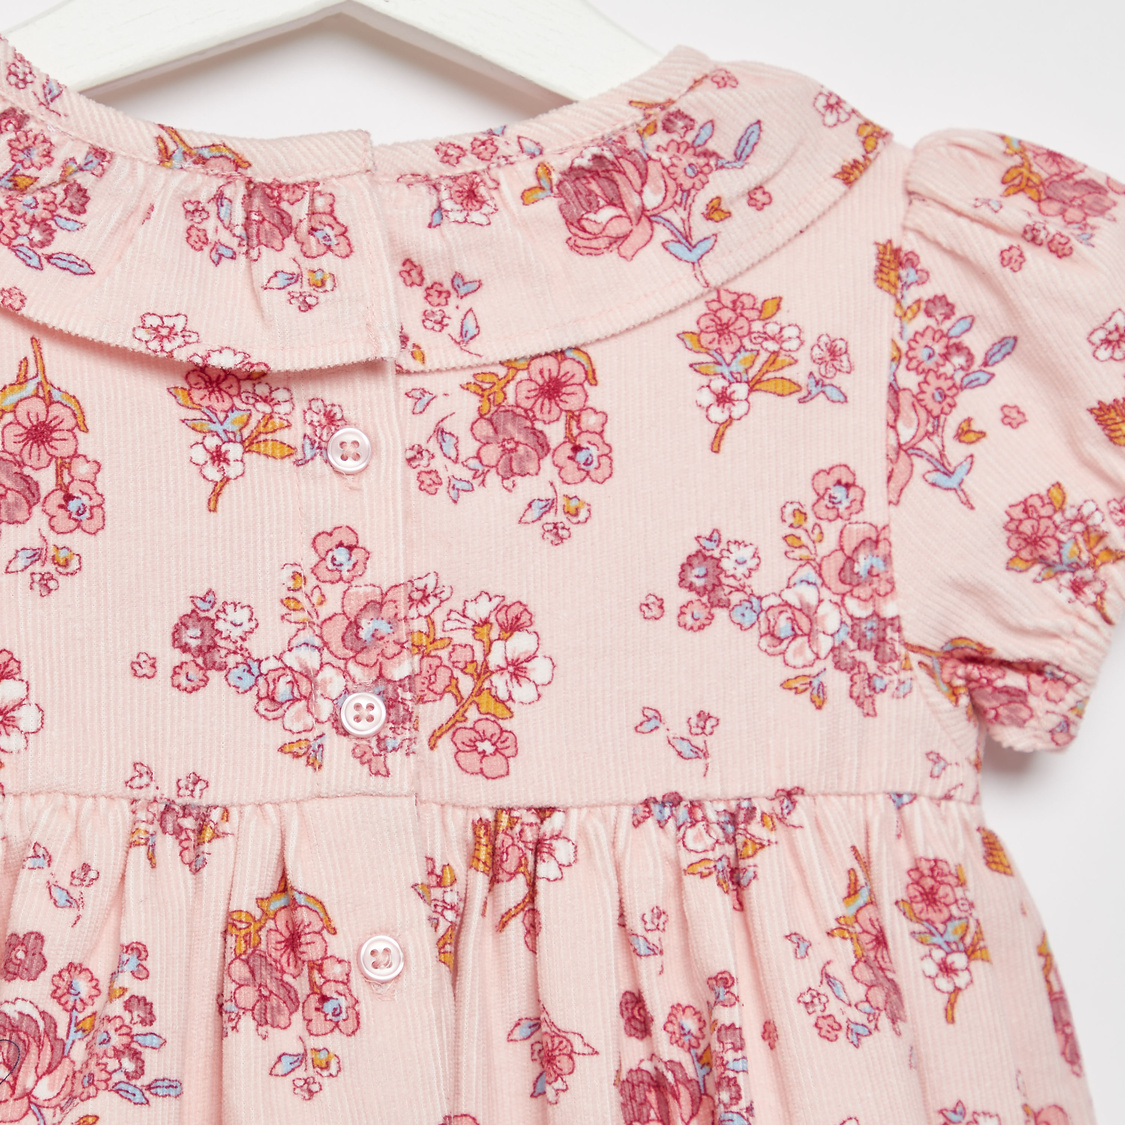 Floral Print Dress with Cap Sleeves and Ruffle Detail